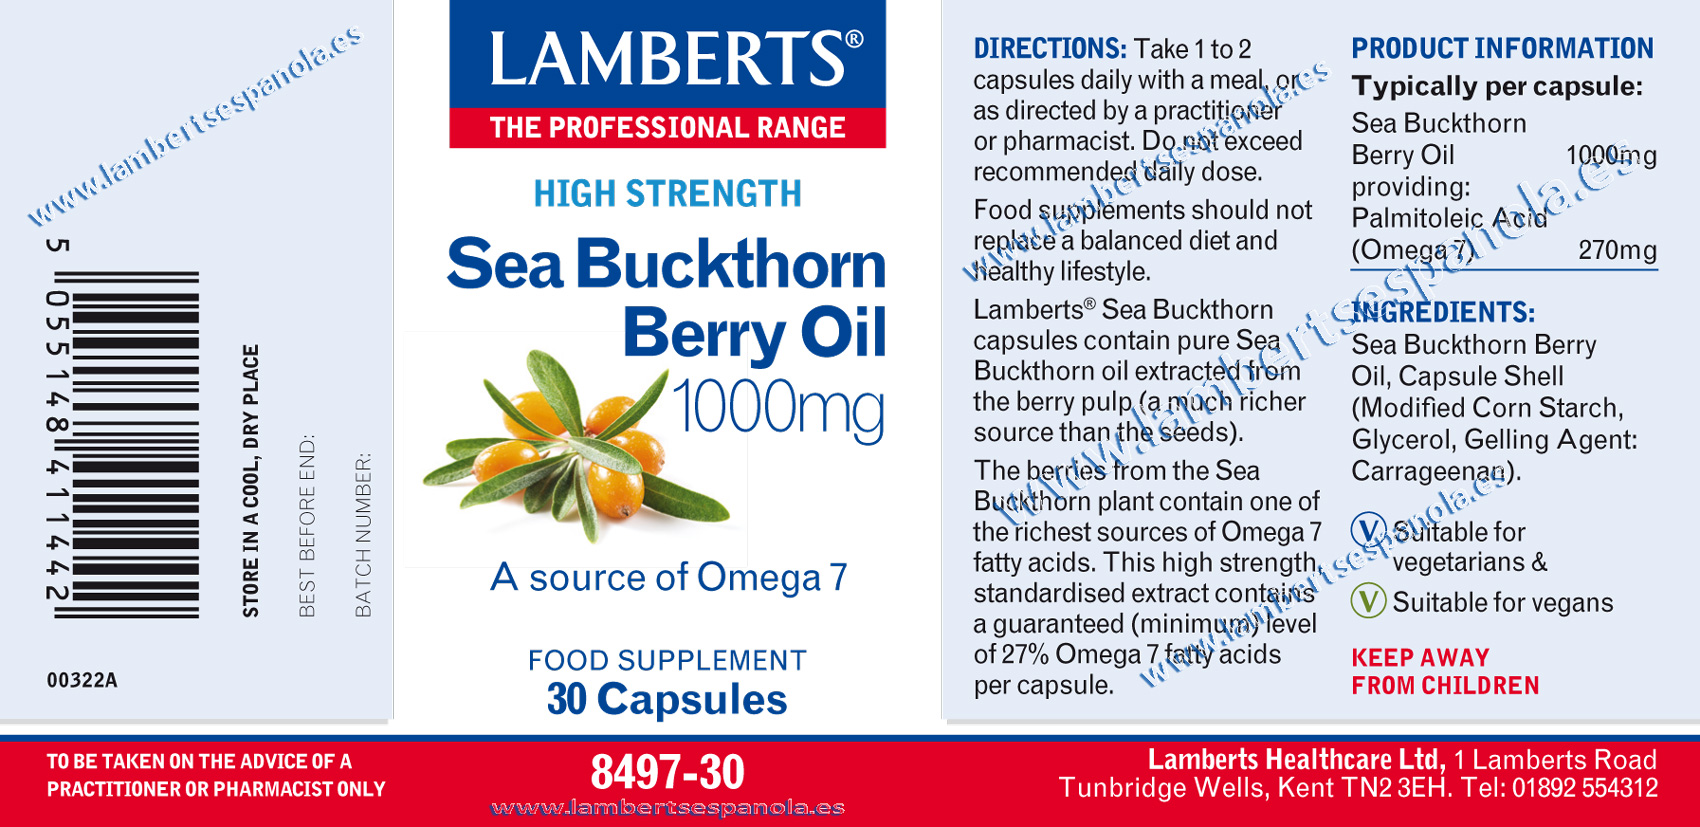 Sea Buckthorn oil properties. Lamberts